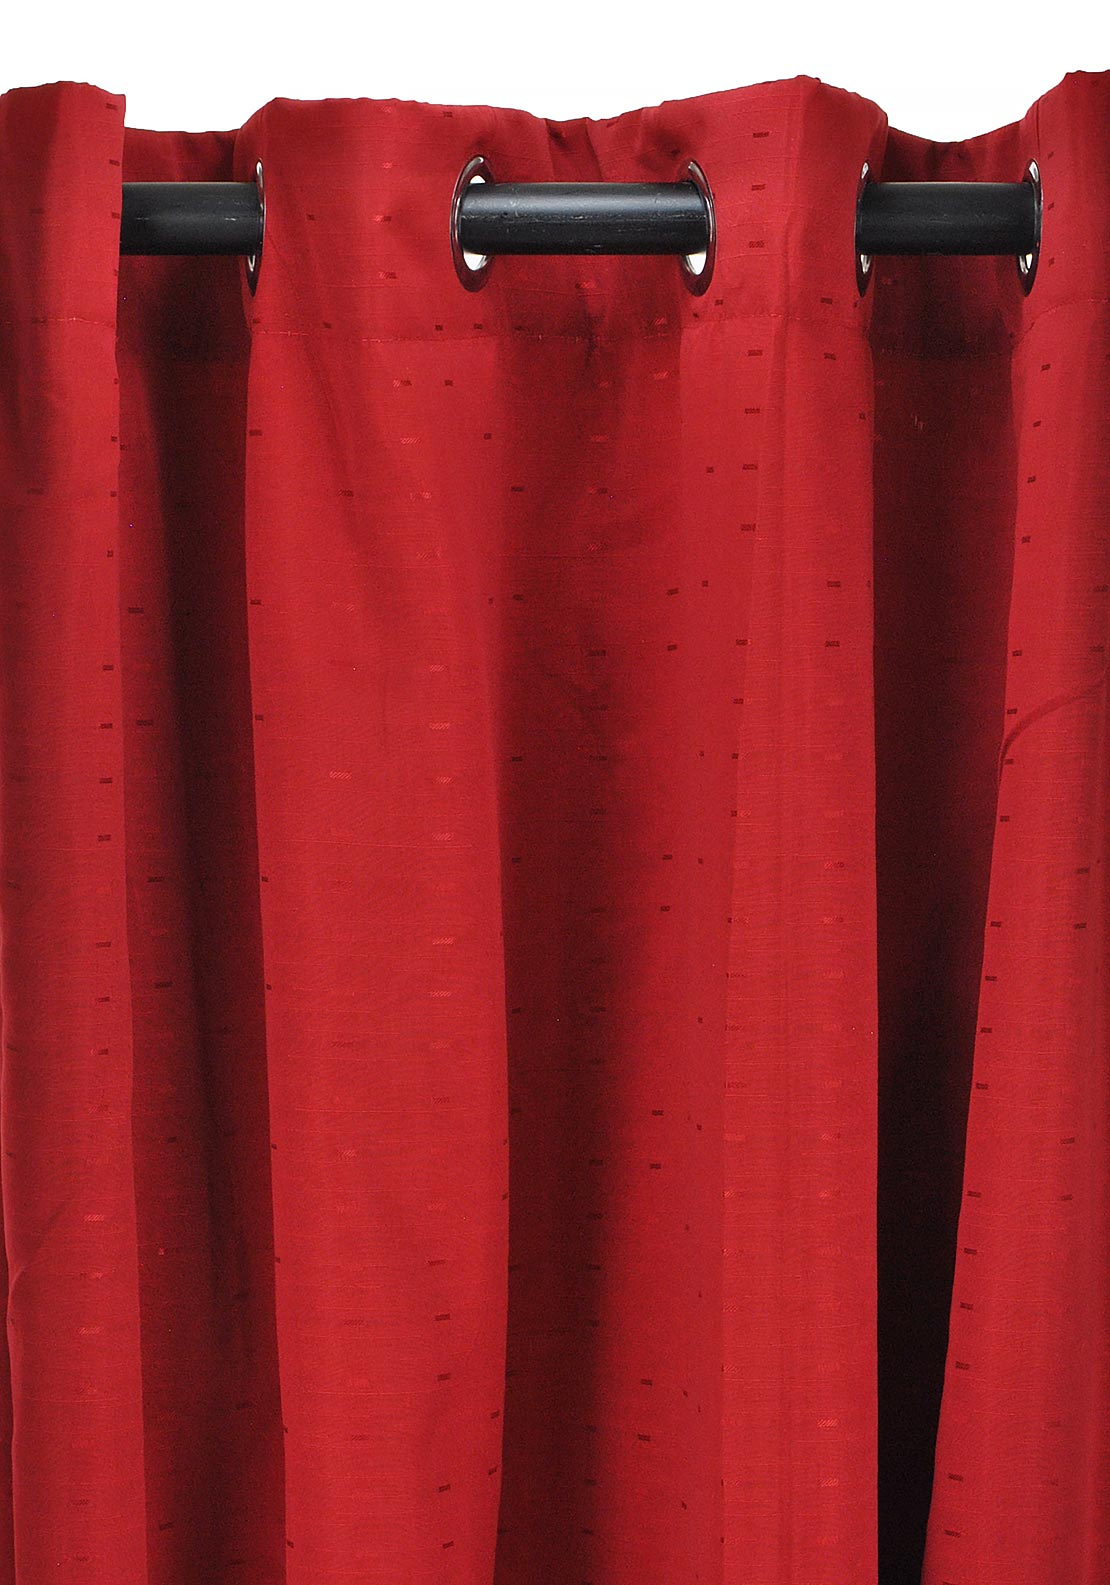 Wilton Collection Miami Readymade Eyelet Curtains, Red 269 x 229cm